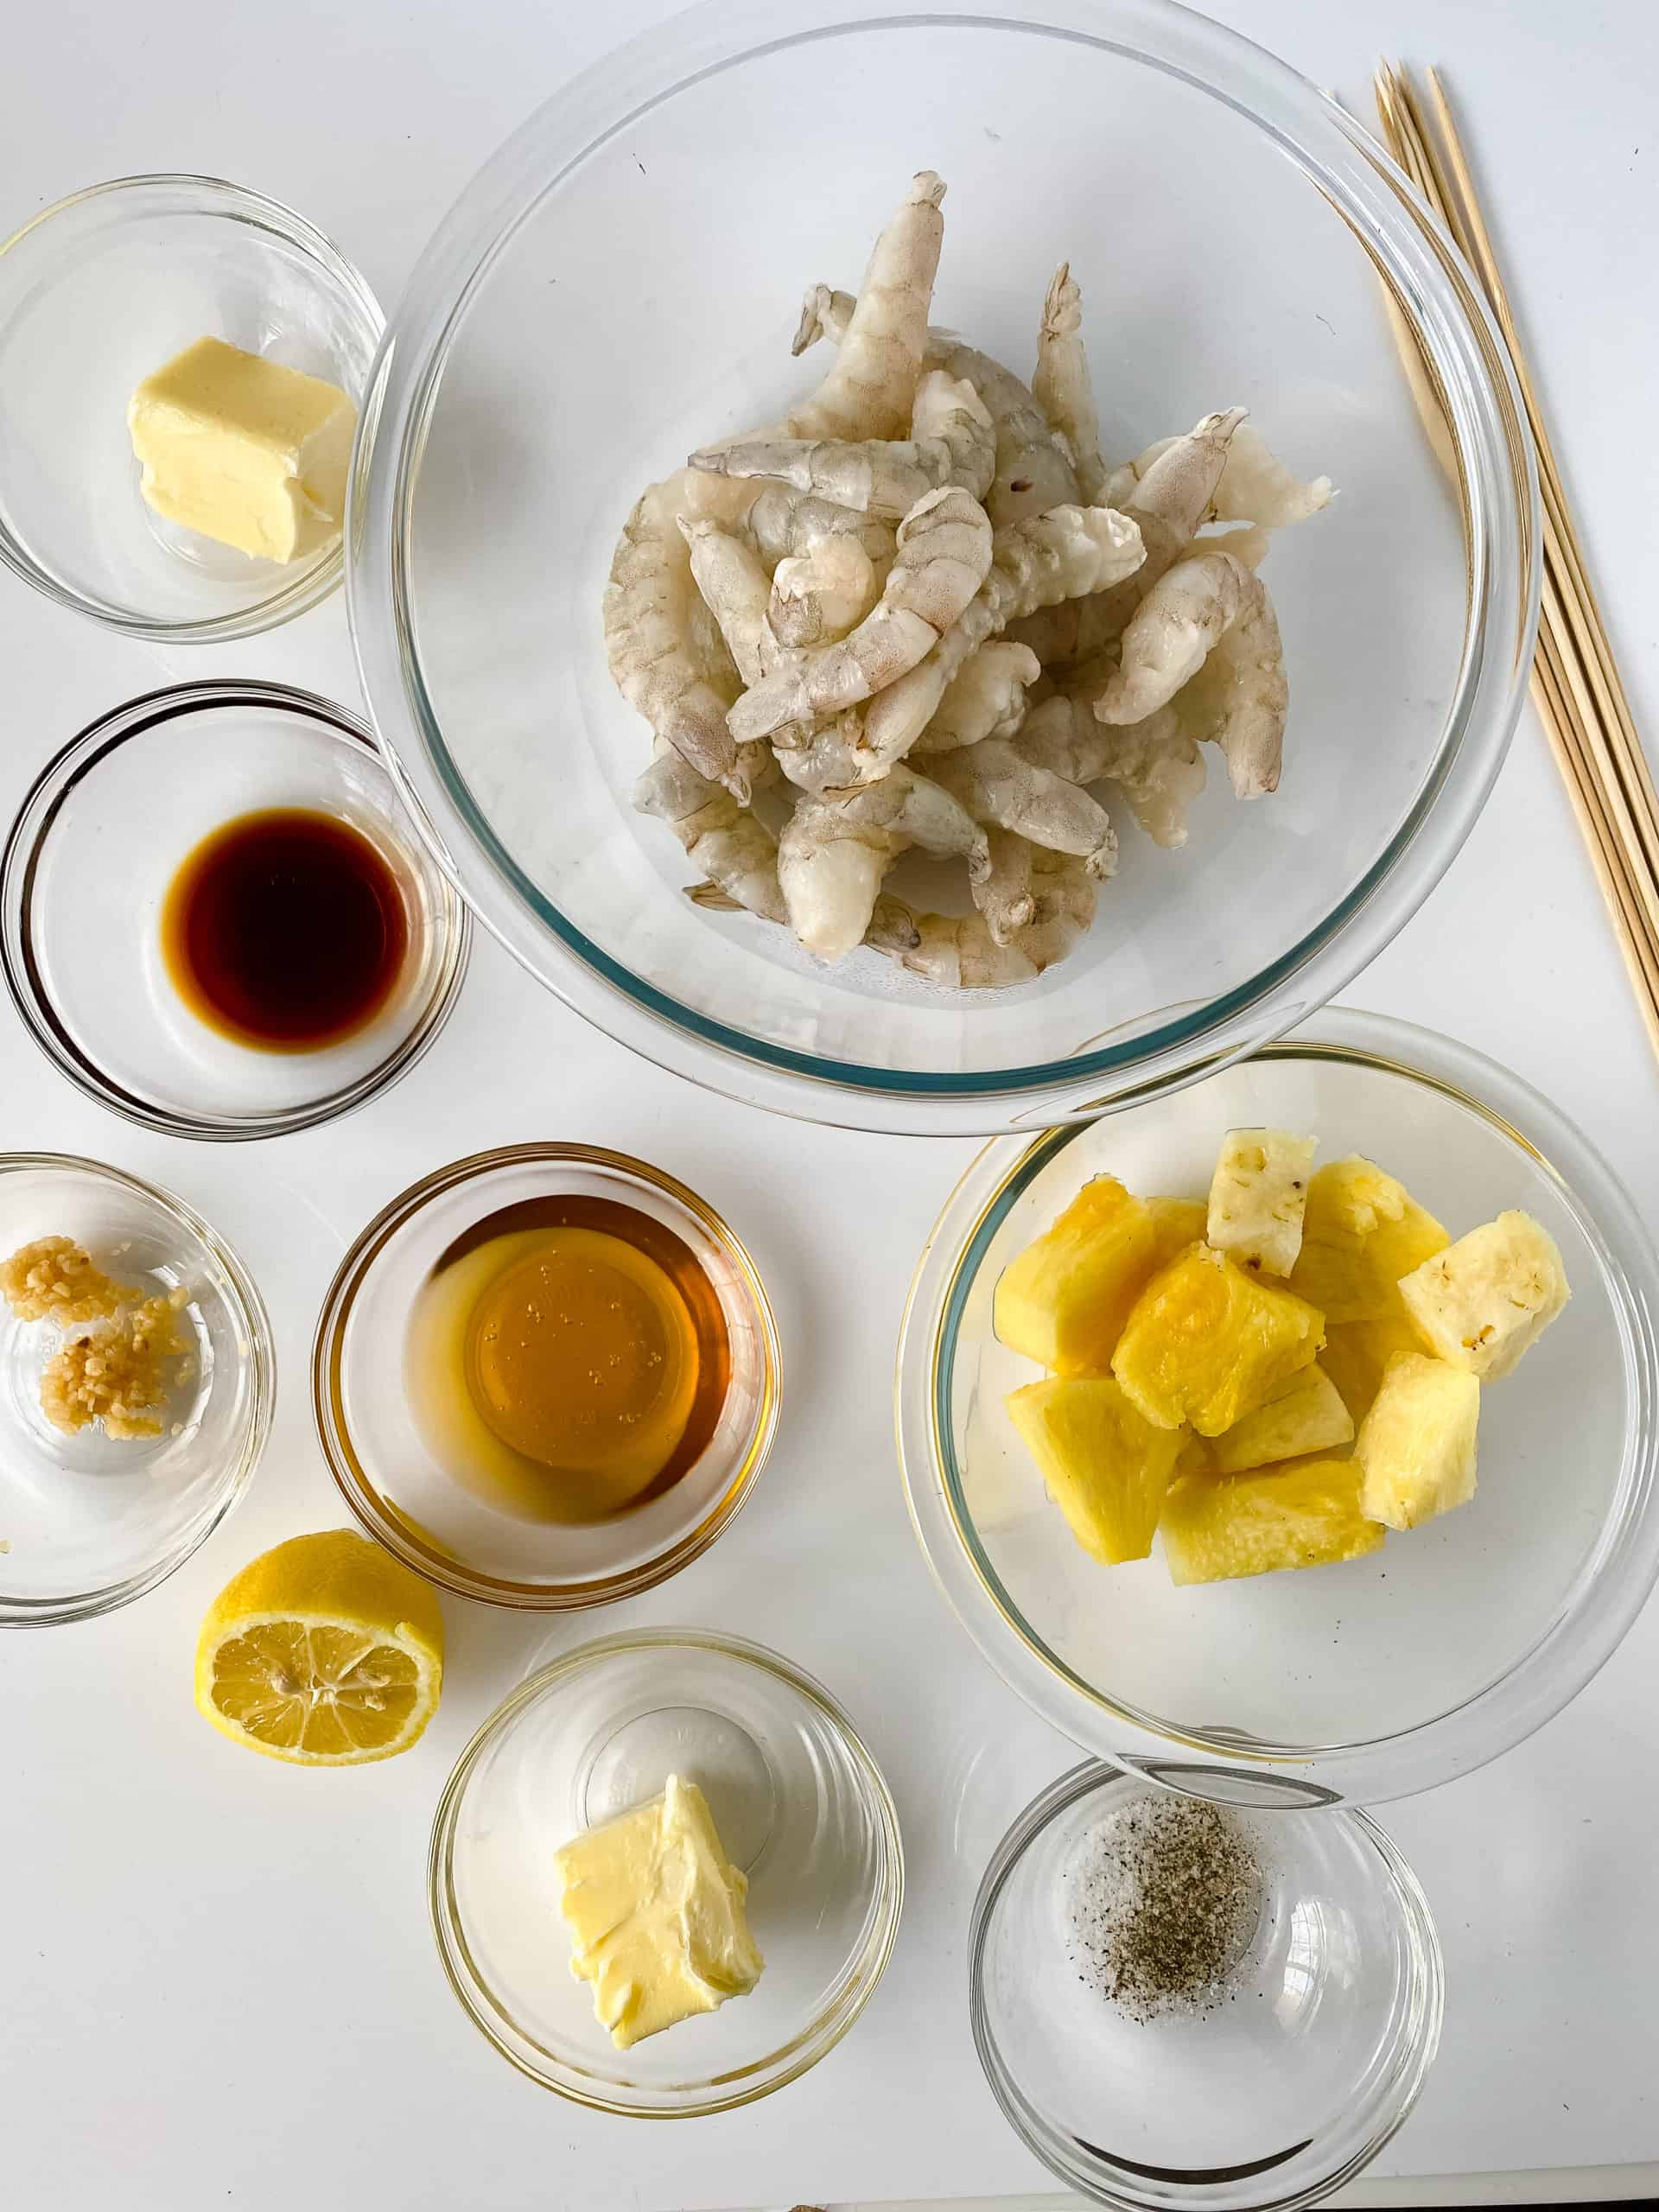 Clear glass bowls of shrimp, pineapple honey and other ingredients.